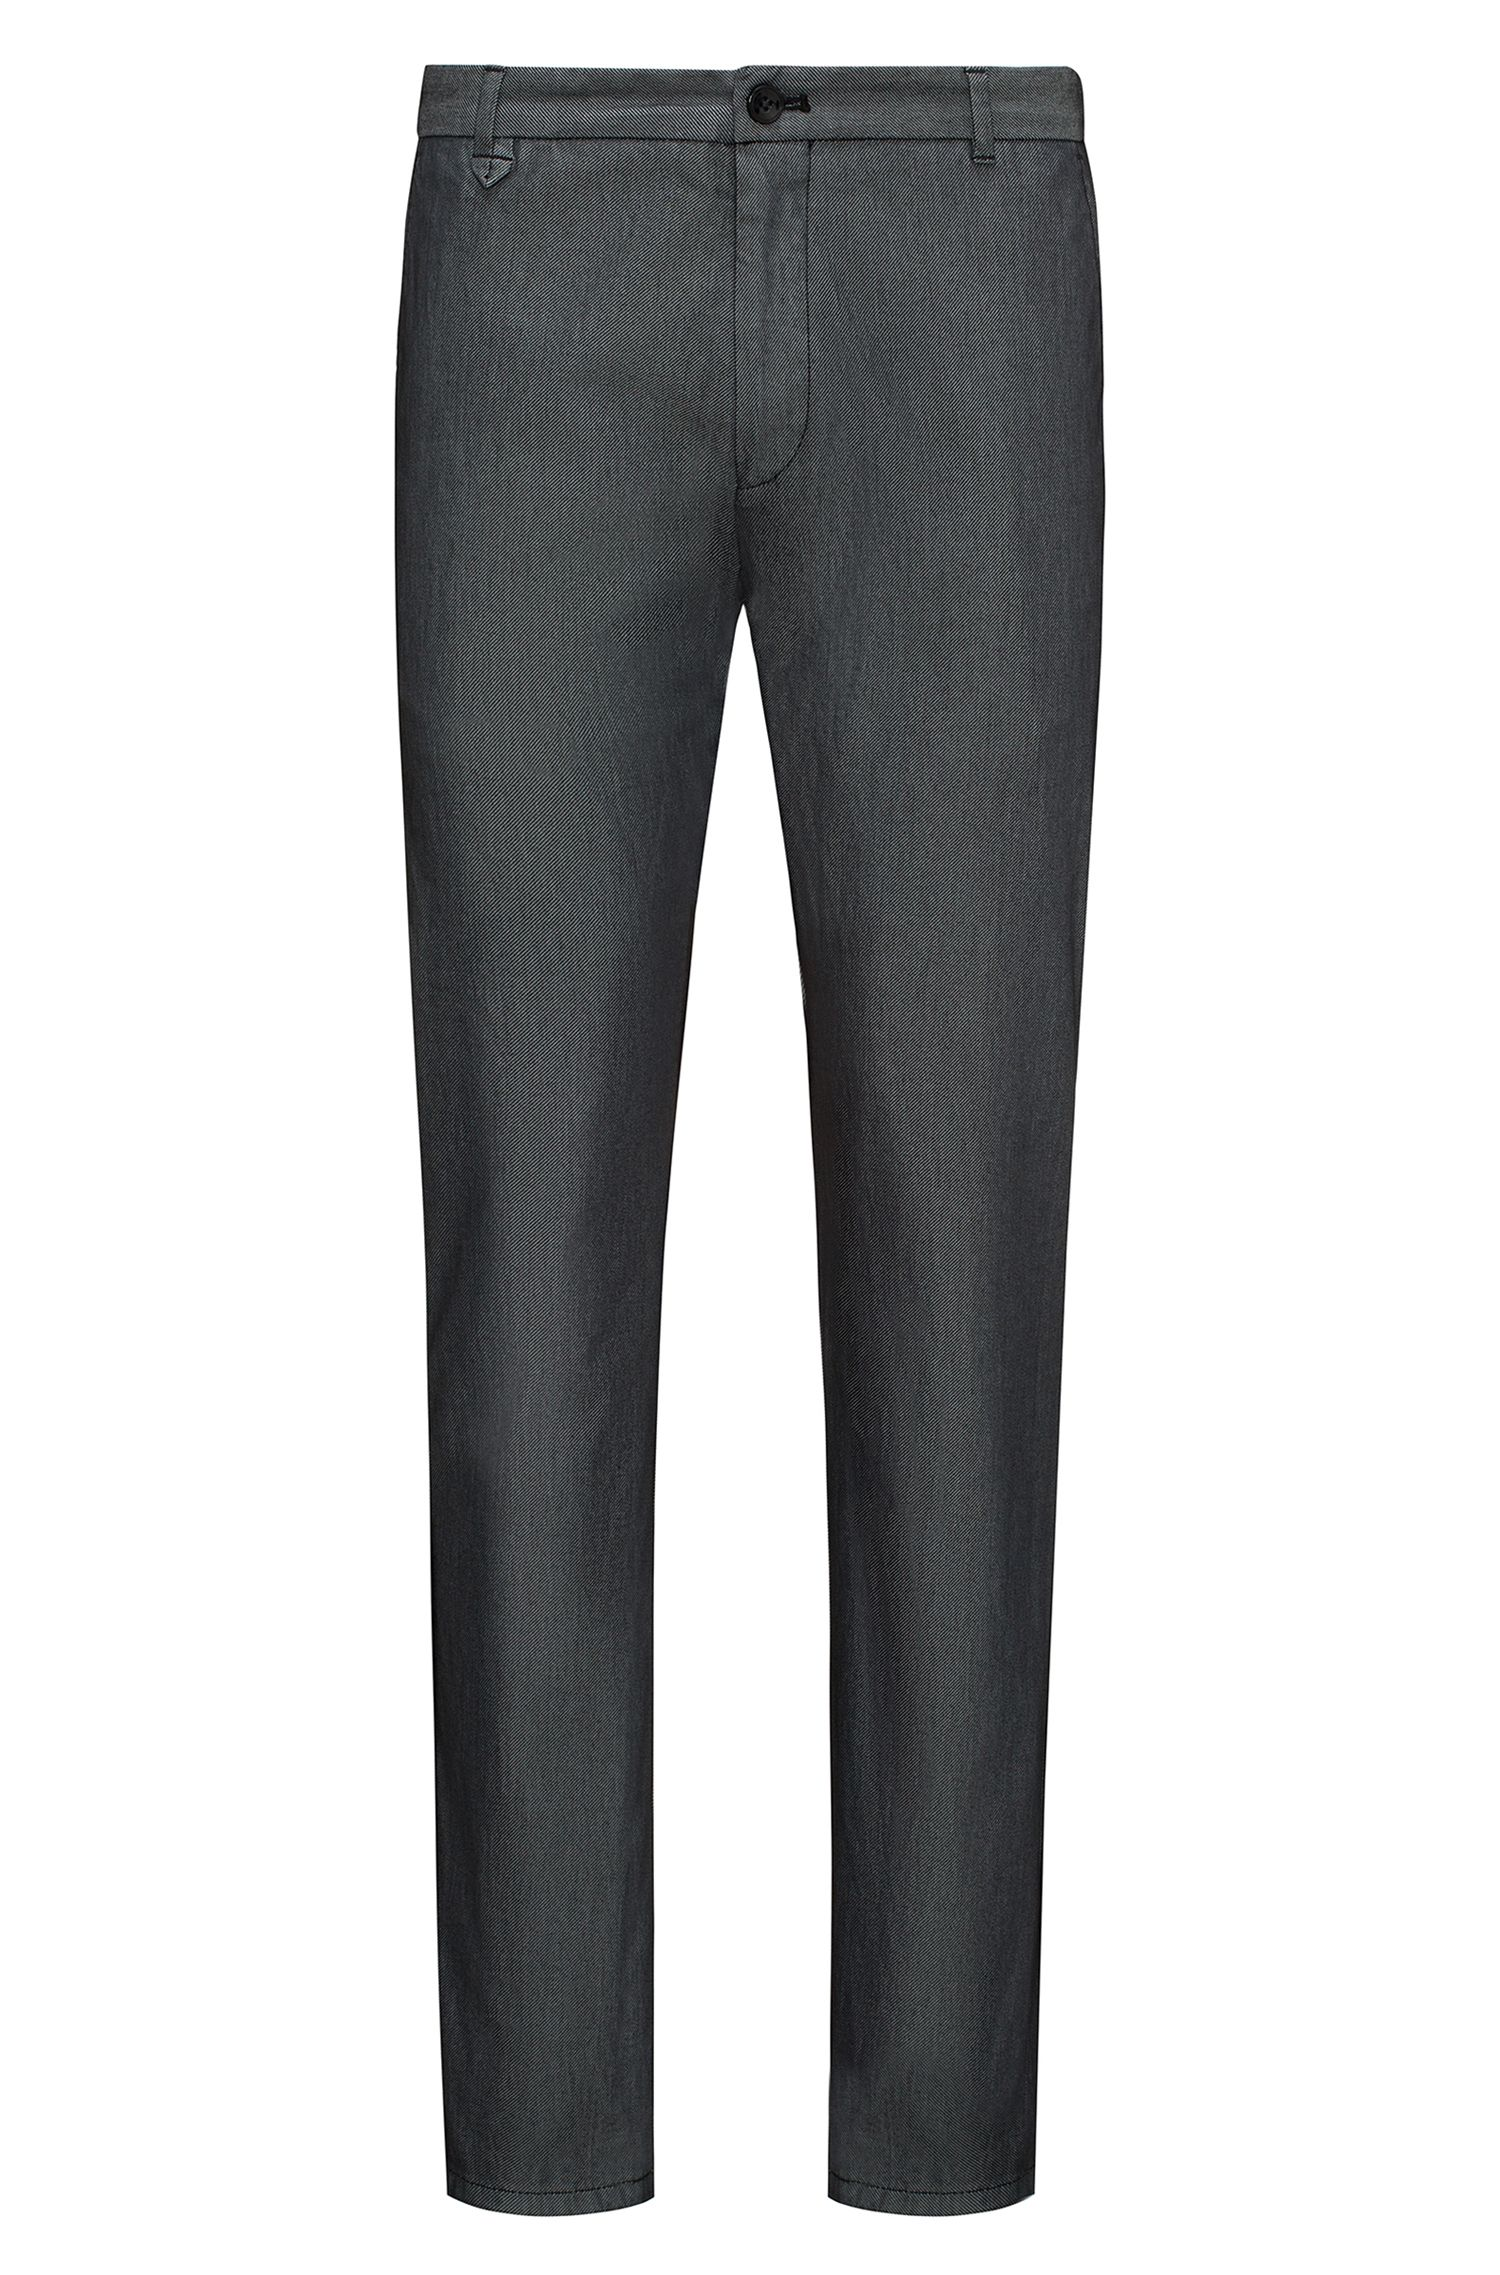 Extra-slim-fit trousers in two-tone stretch gabardine